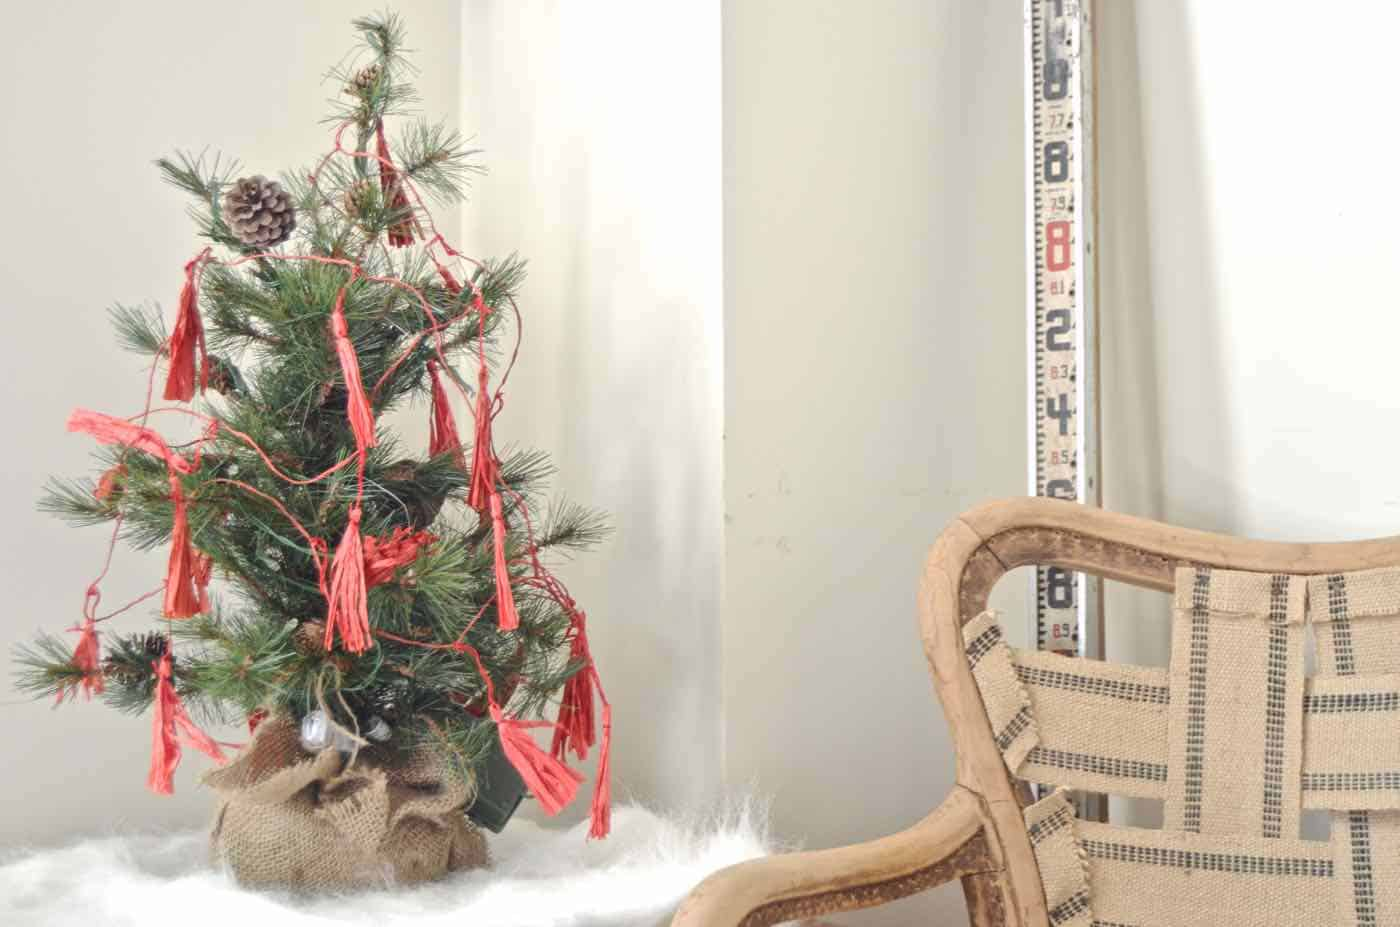 Holiday home tour... thrifted decor throughout our historic home.